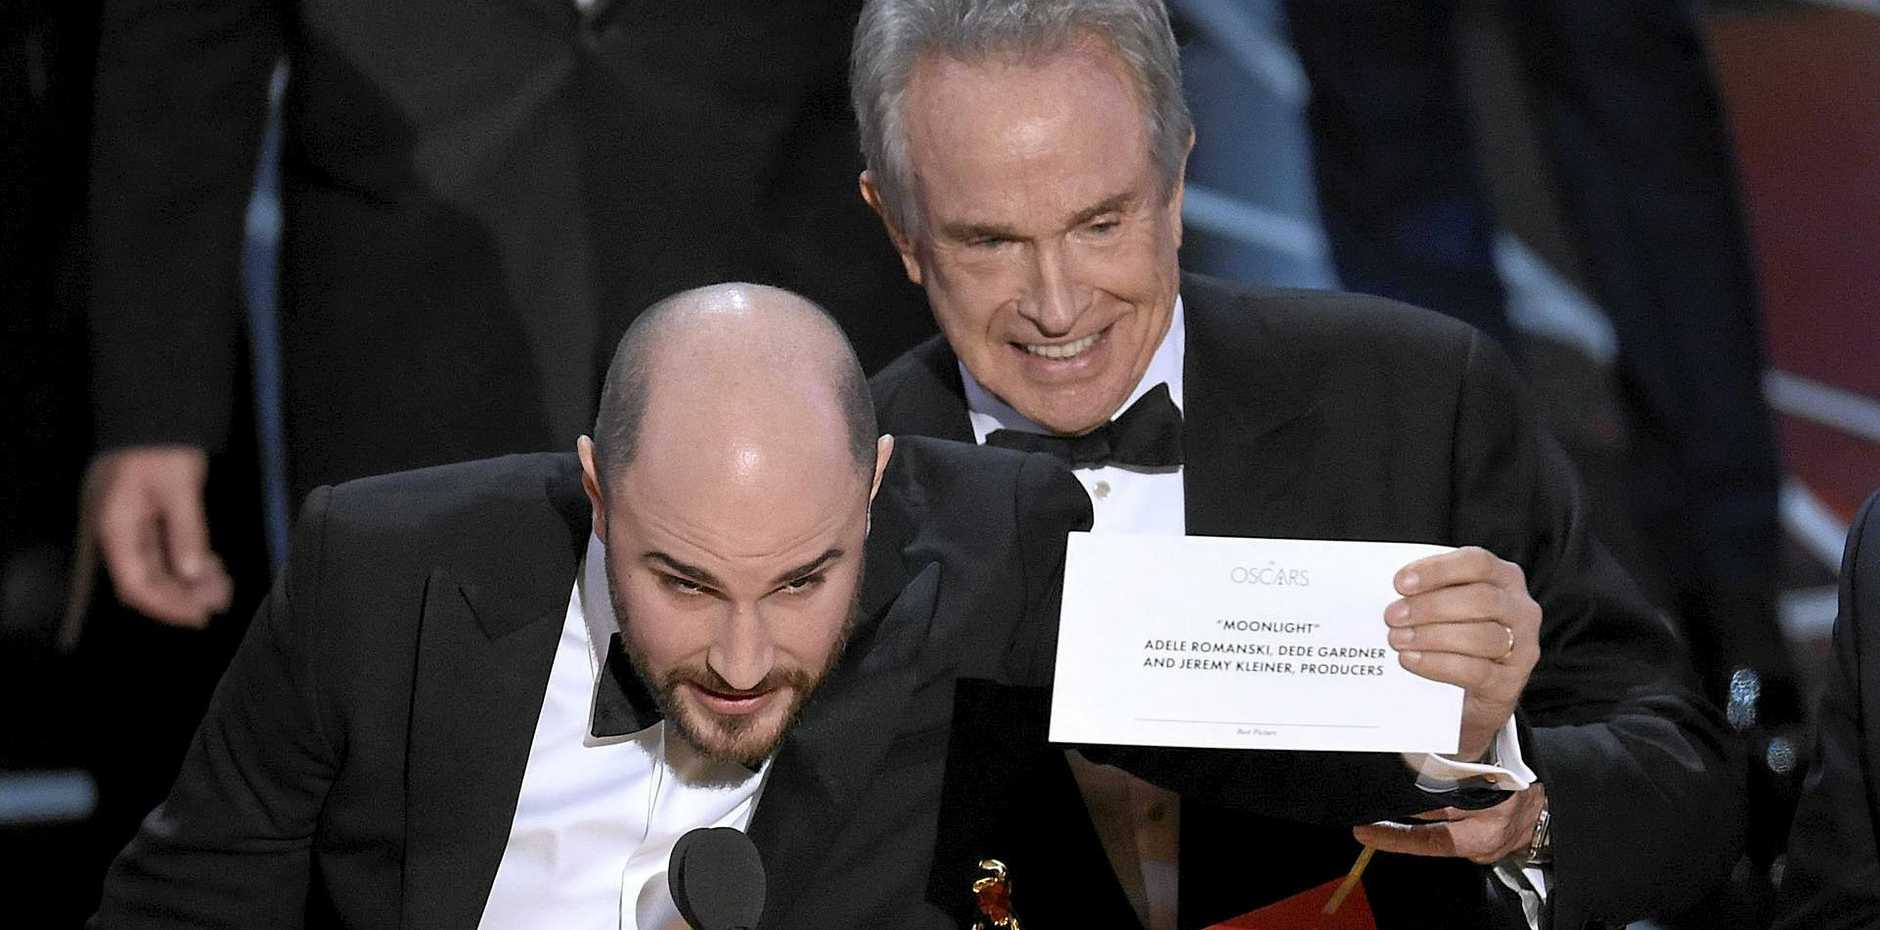 Jordan Horowitz, producer of La La Land, shows the envelope revealing Moonlight as the true winner of best picture at the Oscars on Sunday, February 26, 2017, at the Dolby Theatre in Los Angeles. Presenter Warren Beatty looks on from right.